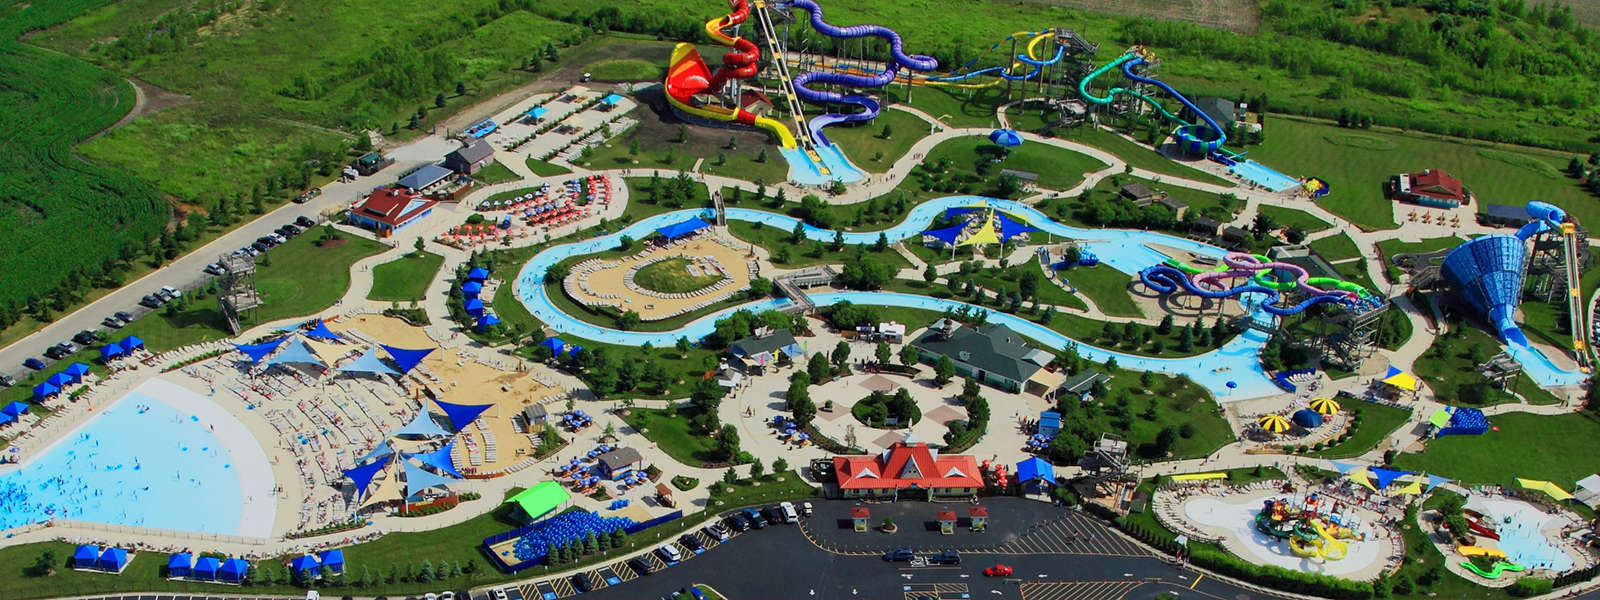 Outrageous Fun at Illinois' Largest Waterpark